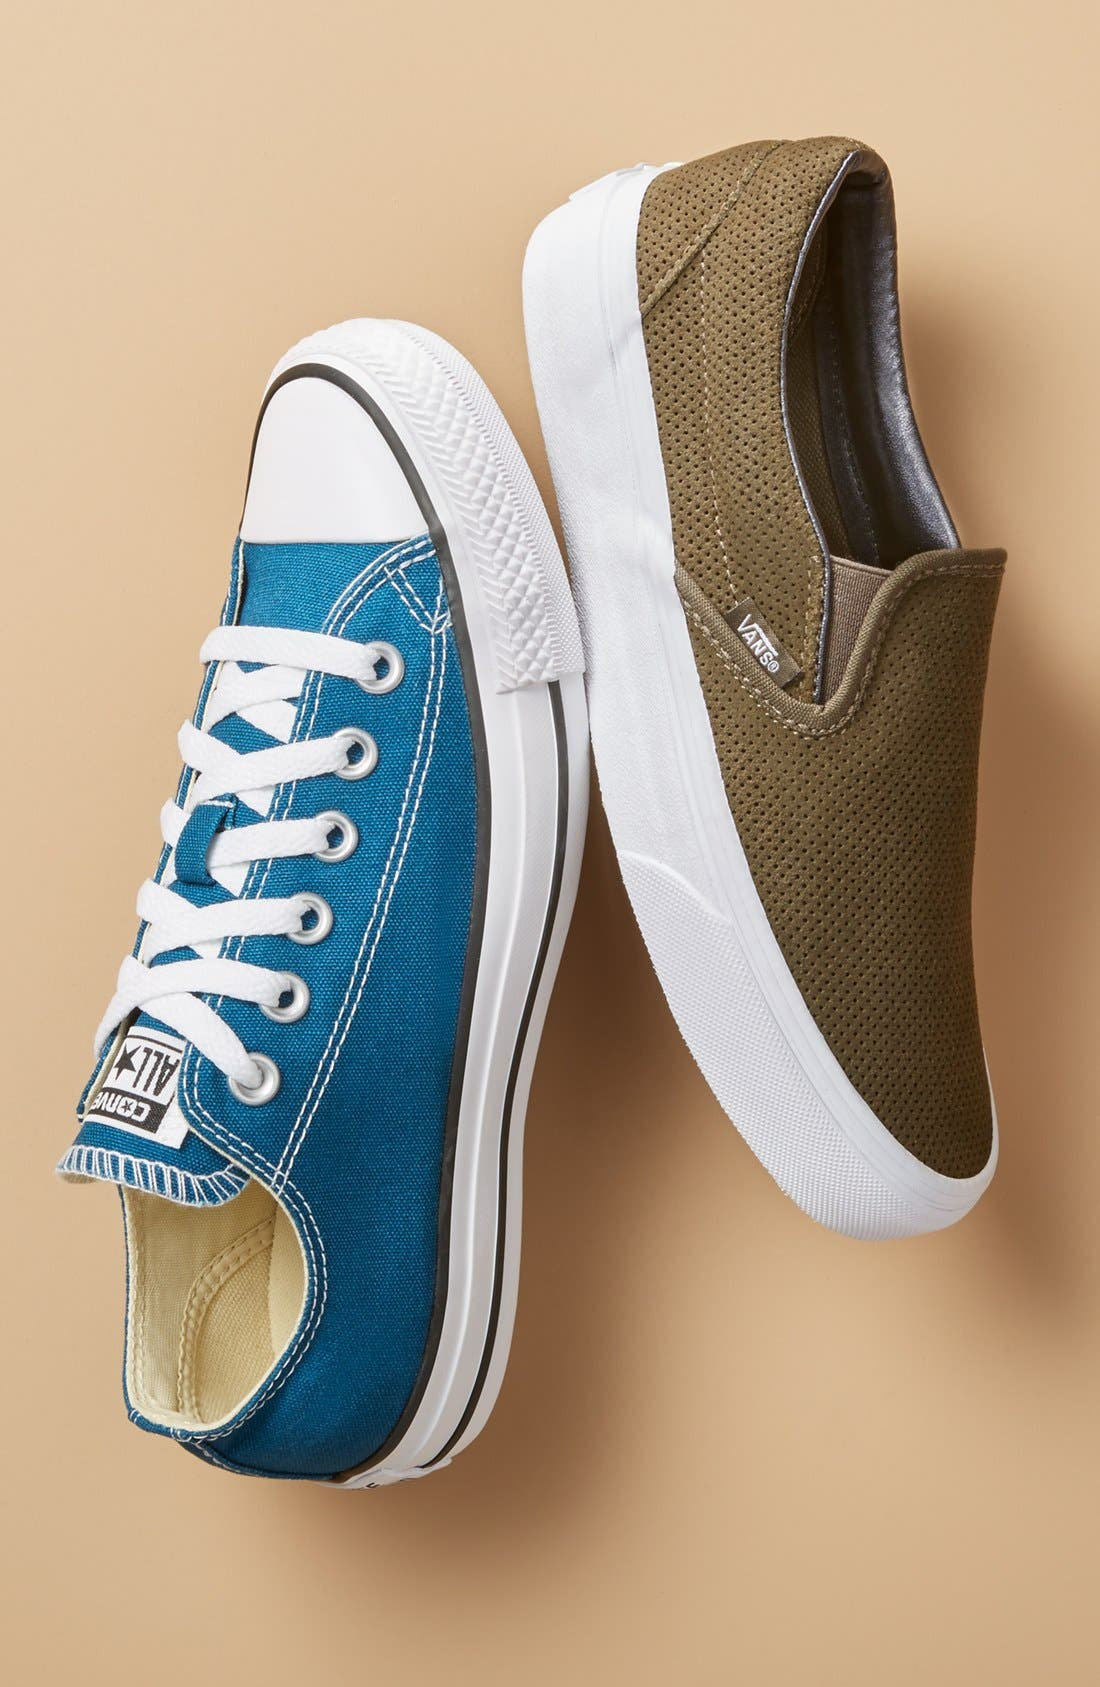 Chuck Taylor<sup>®</sup> All Star<sup>®</sup> Seasonal Ox Low Top Sneaker,                             Alternate thumbnail 7, color,                             BLUE FIR